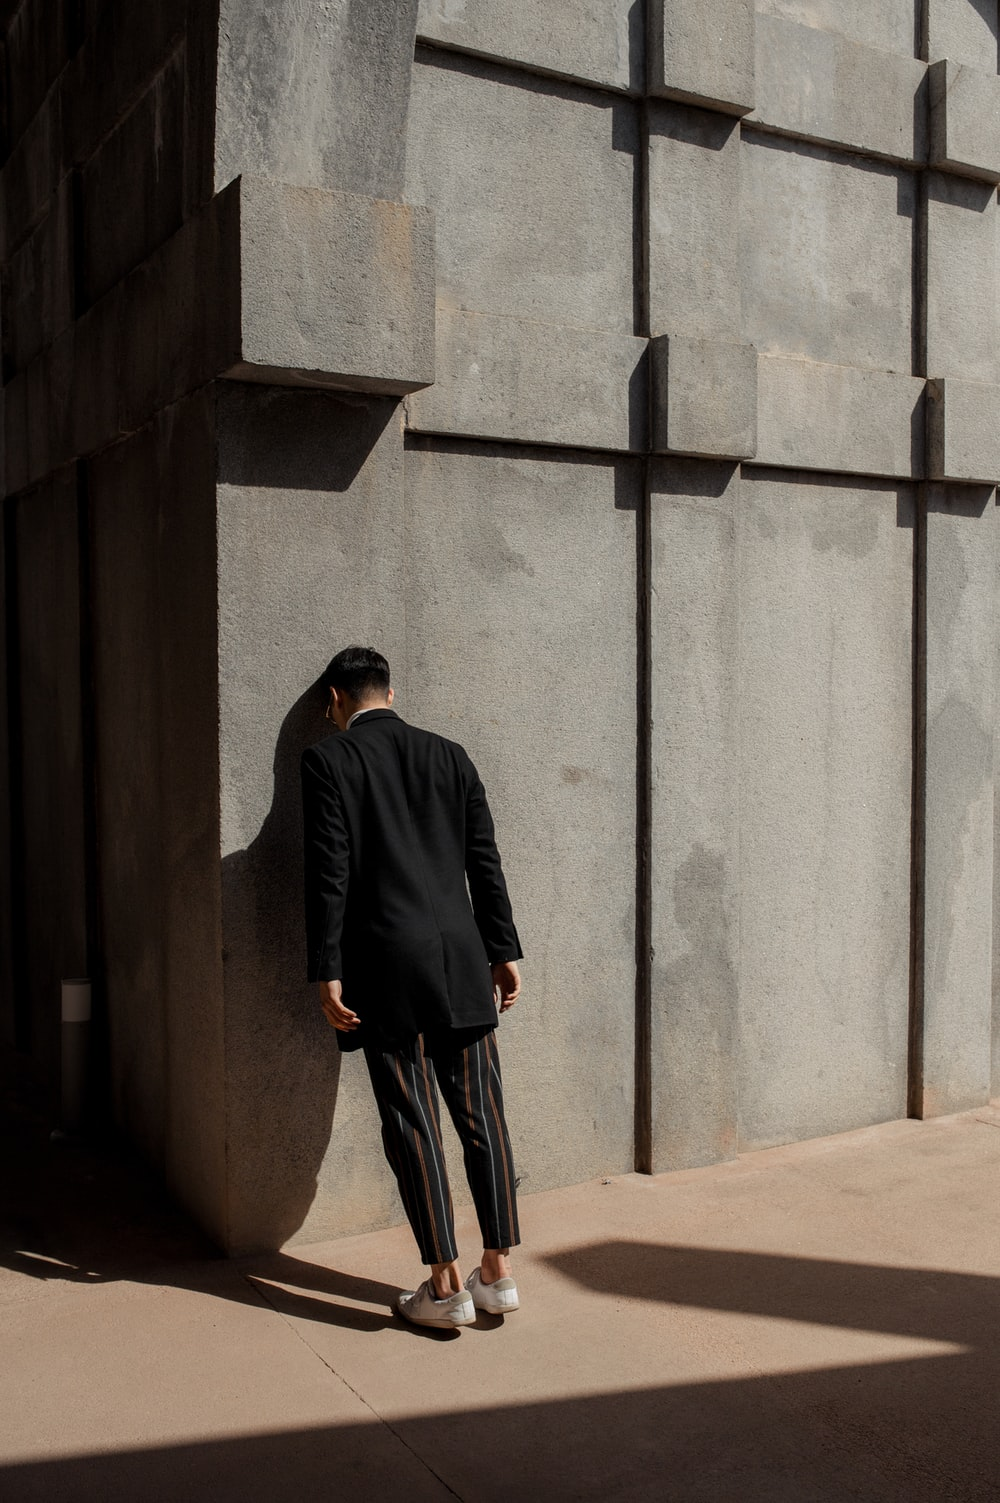 man in black suit banging his head on wall